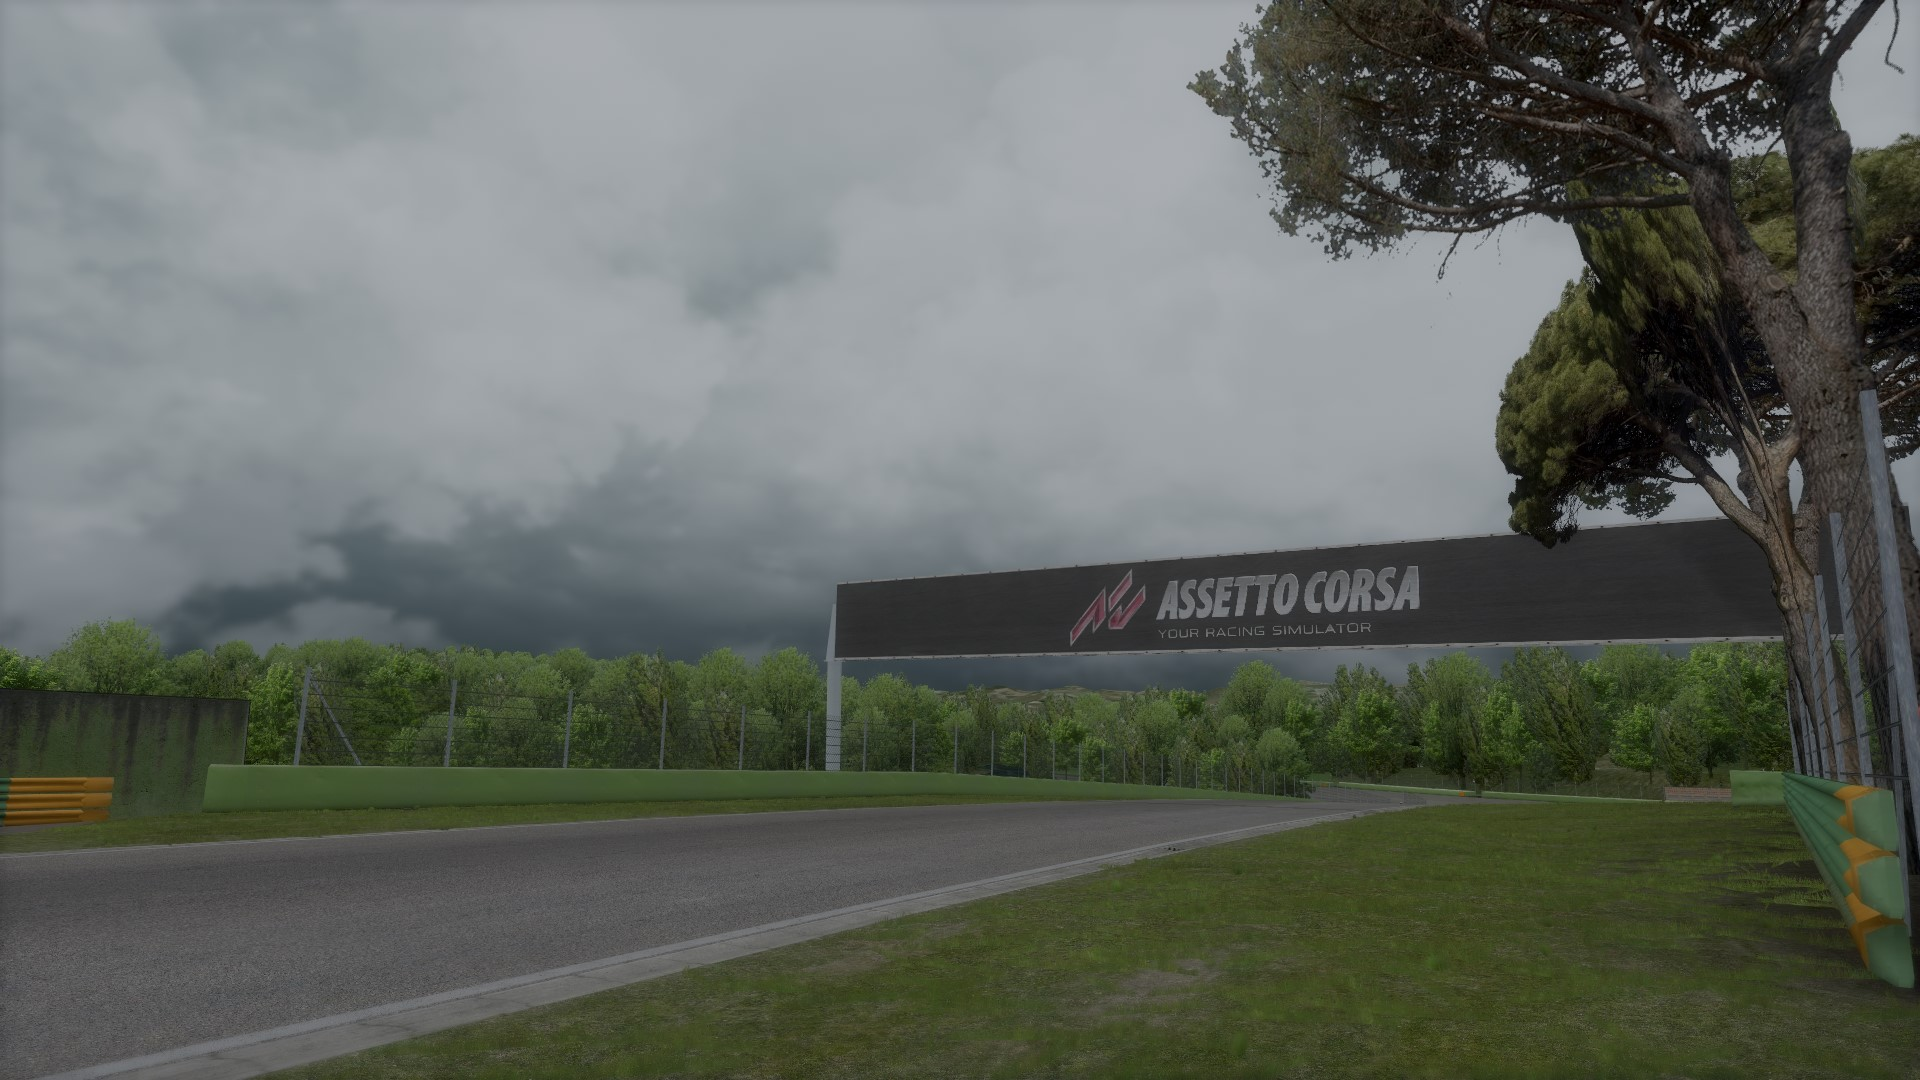 Screenshot_ks_mercedes_c9_imola_10-9-115-16-28-54.jpg